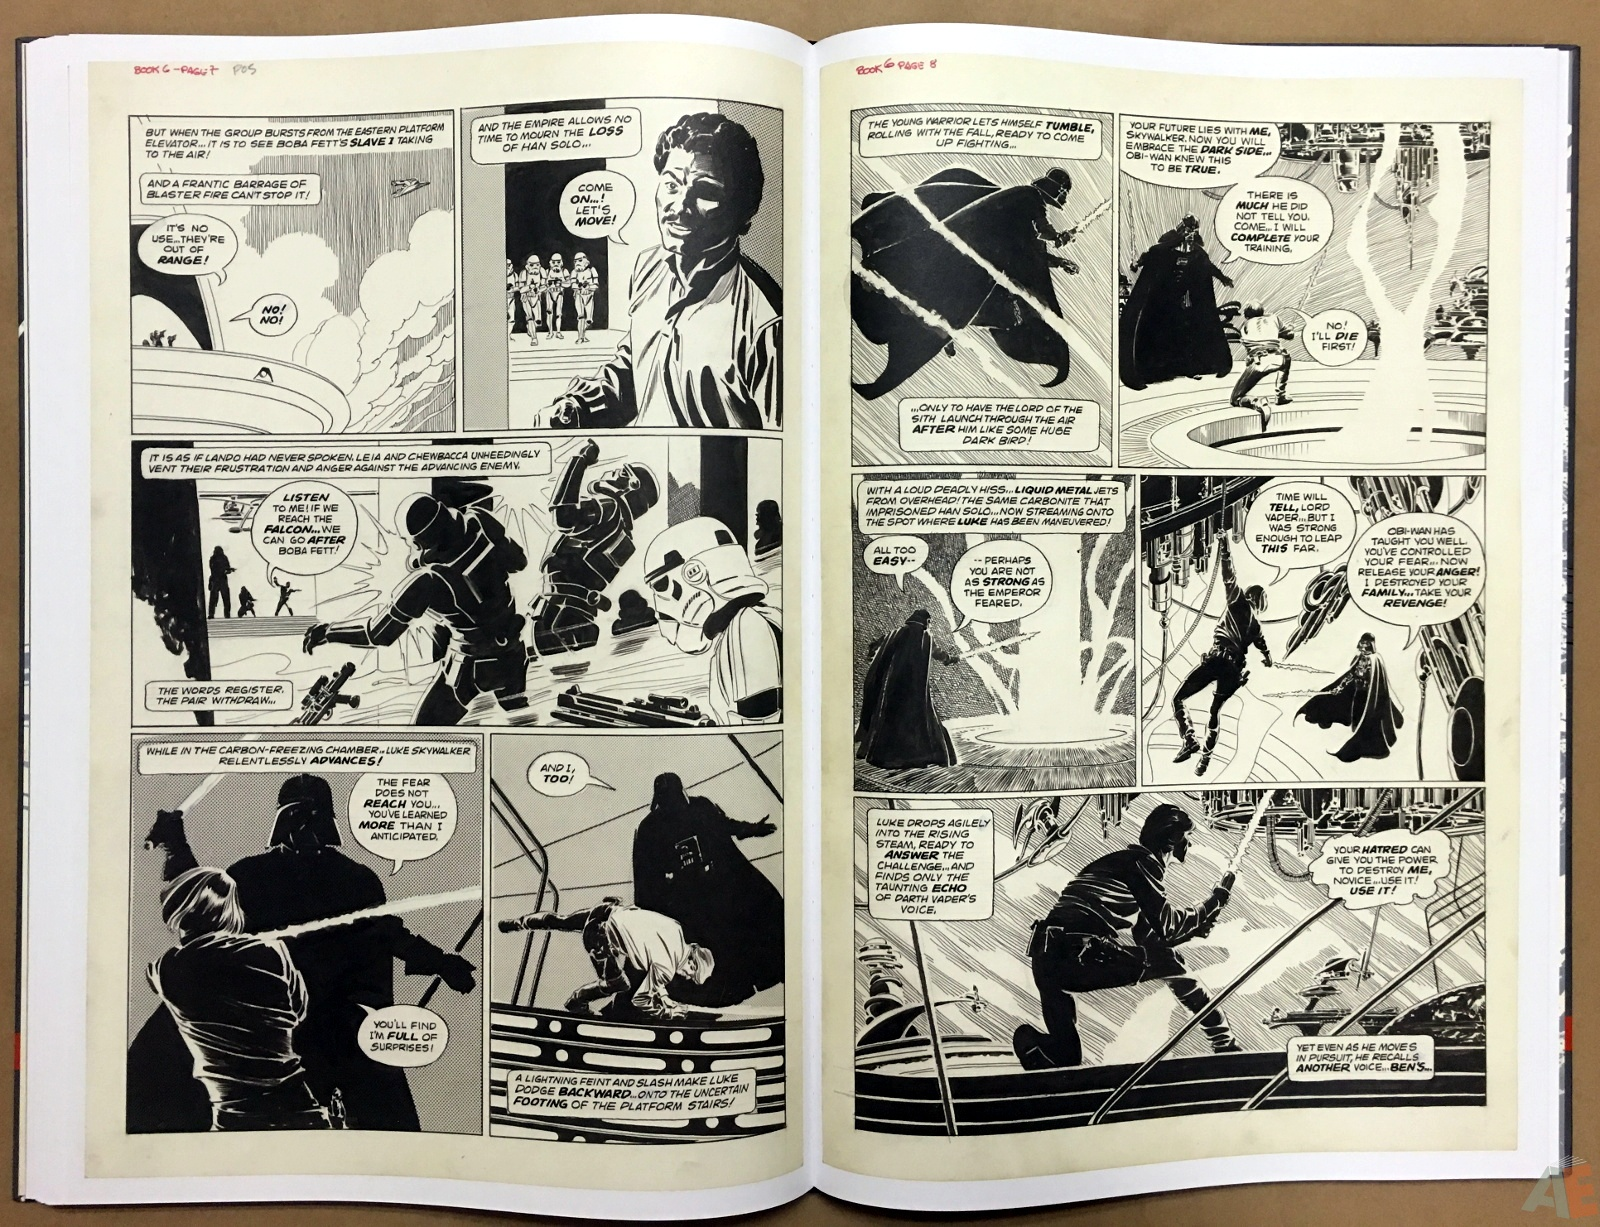 Al Williamson's Star Wars: The Empire Strikes Back Artist's Edition 32